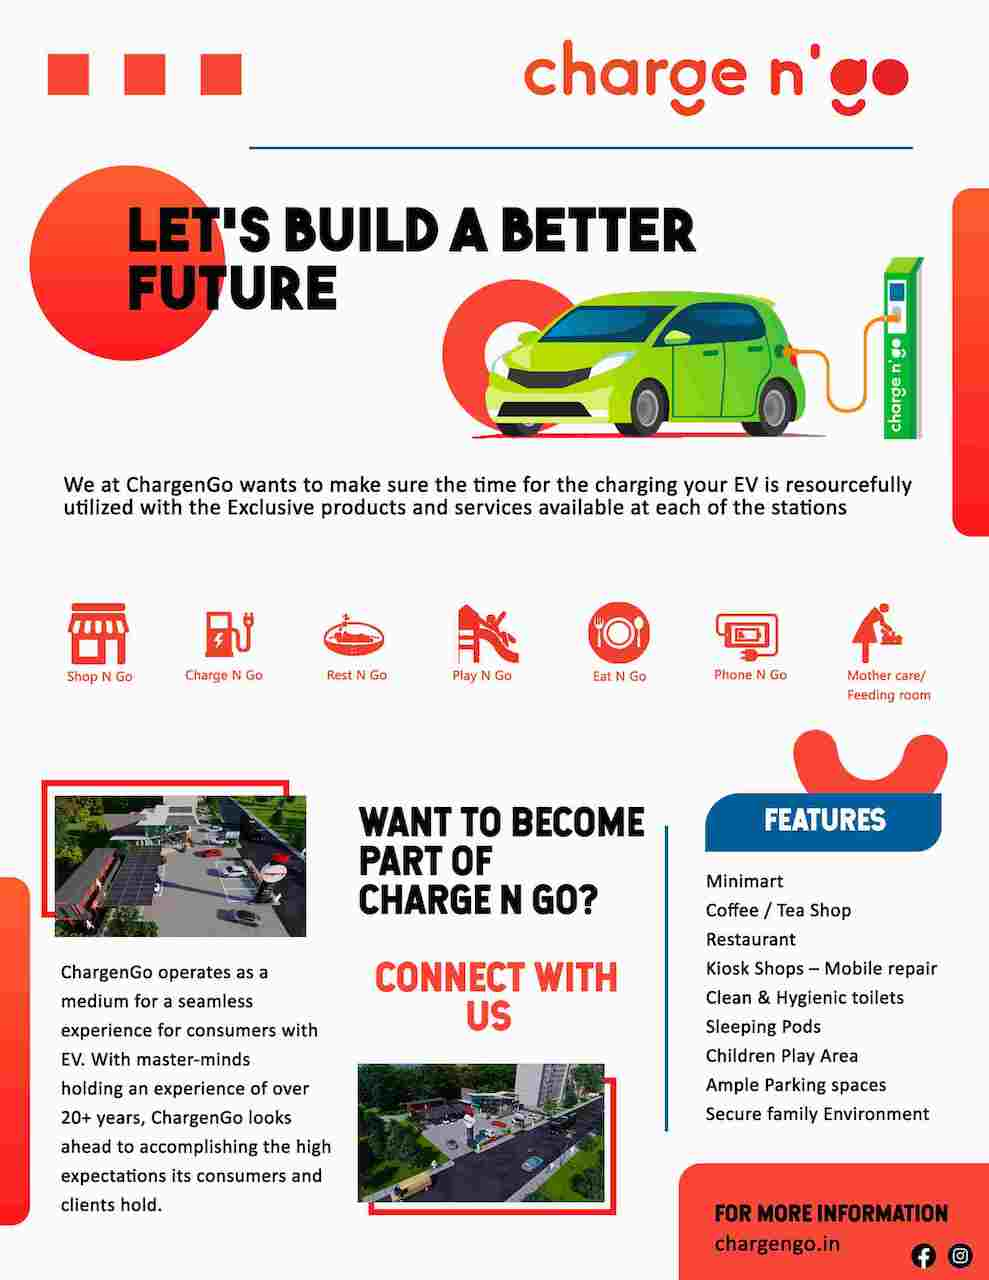 Exclusive Features of Charge n' Go